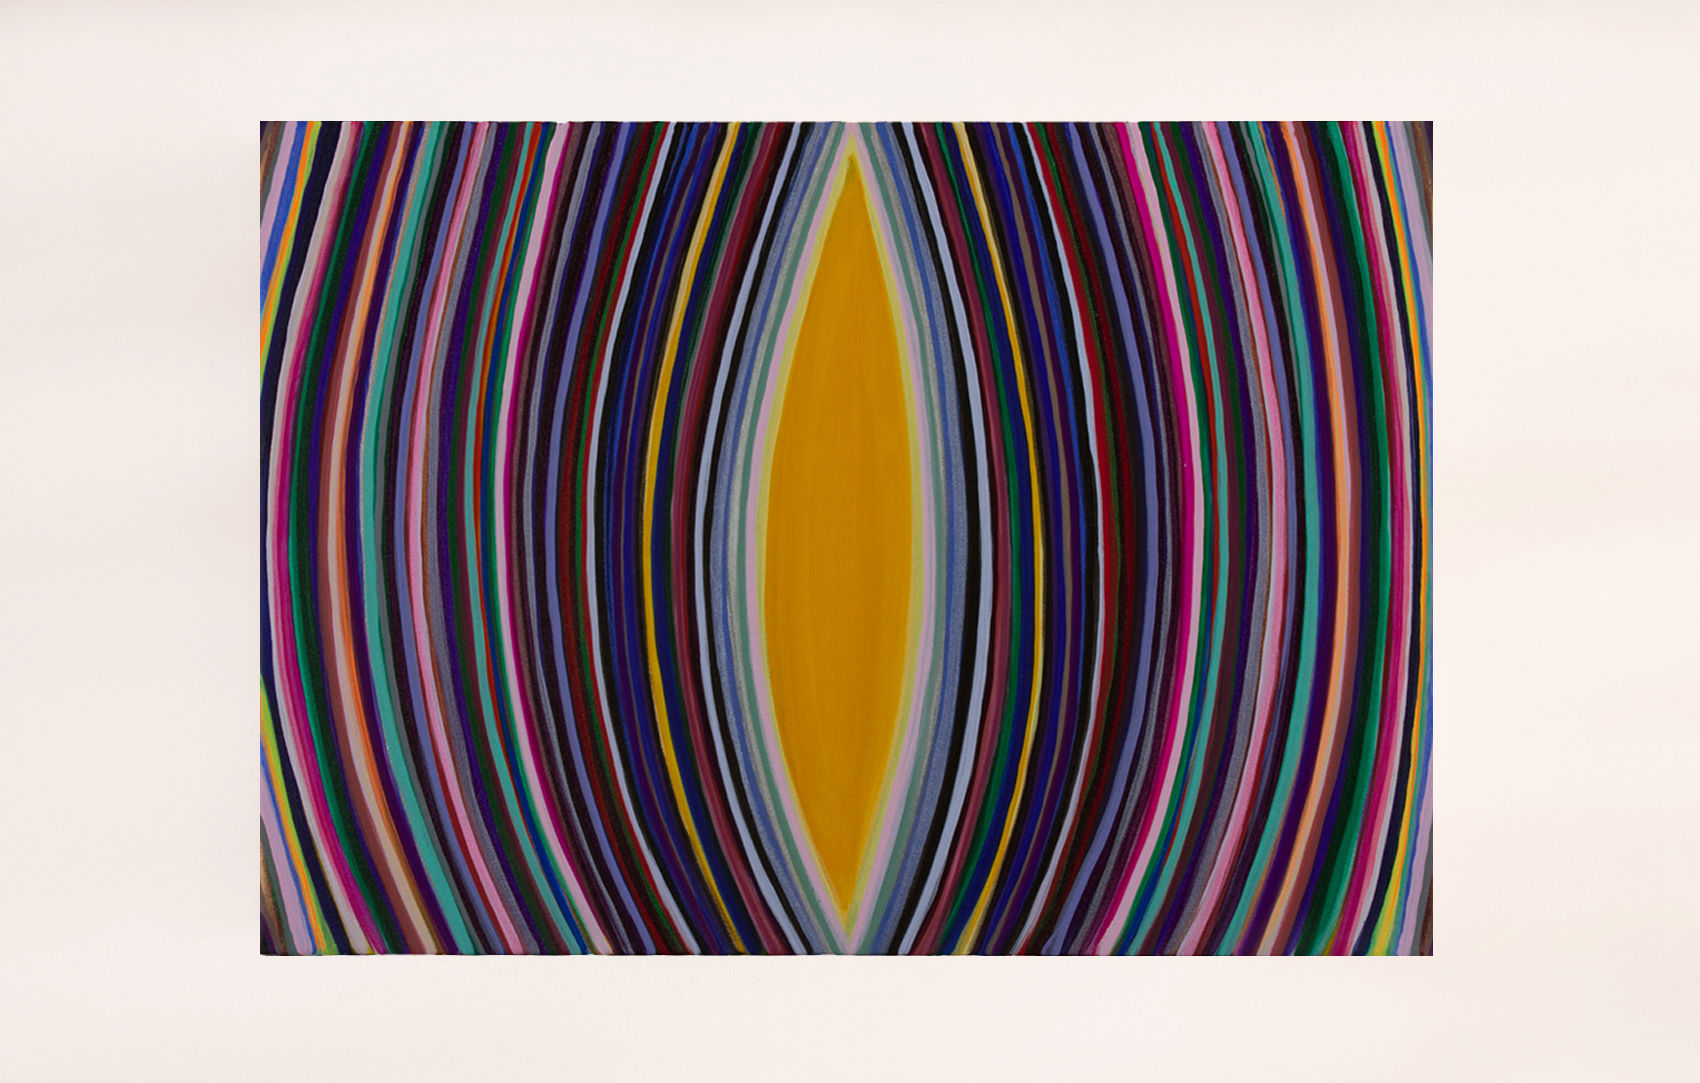 Abstract painting with multi-colored radiating lines.